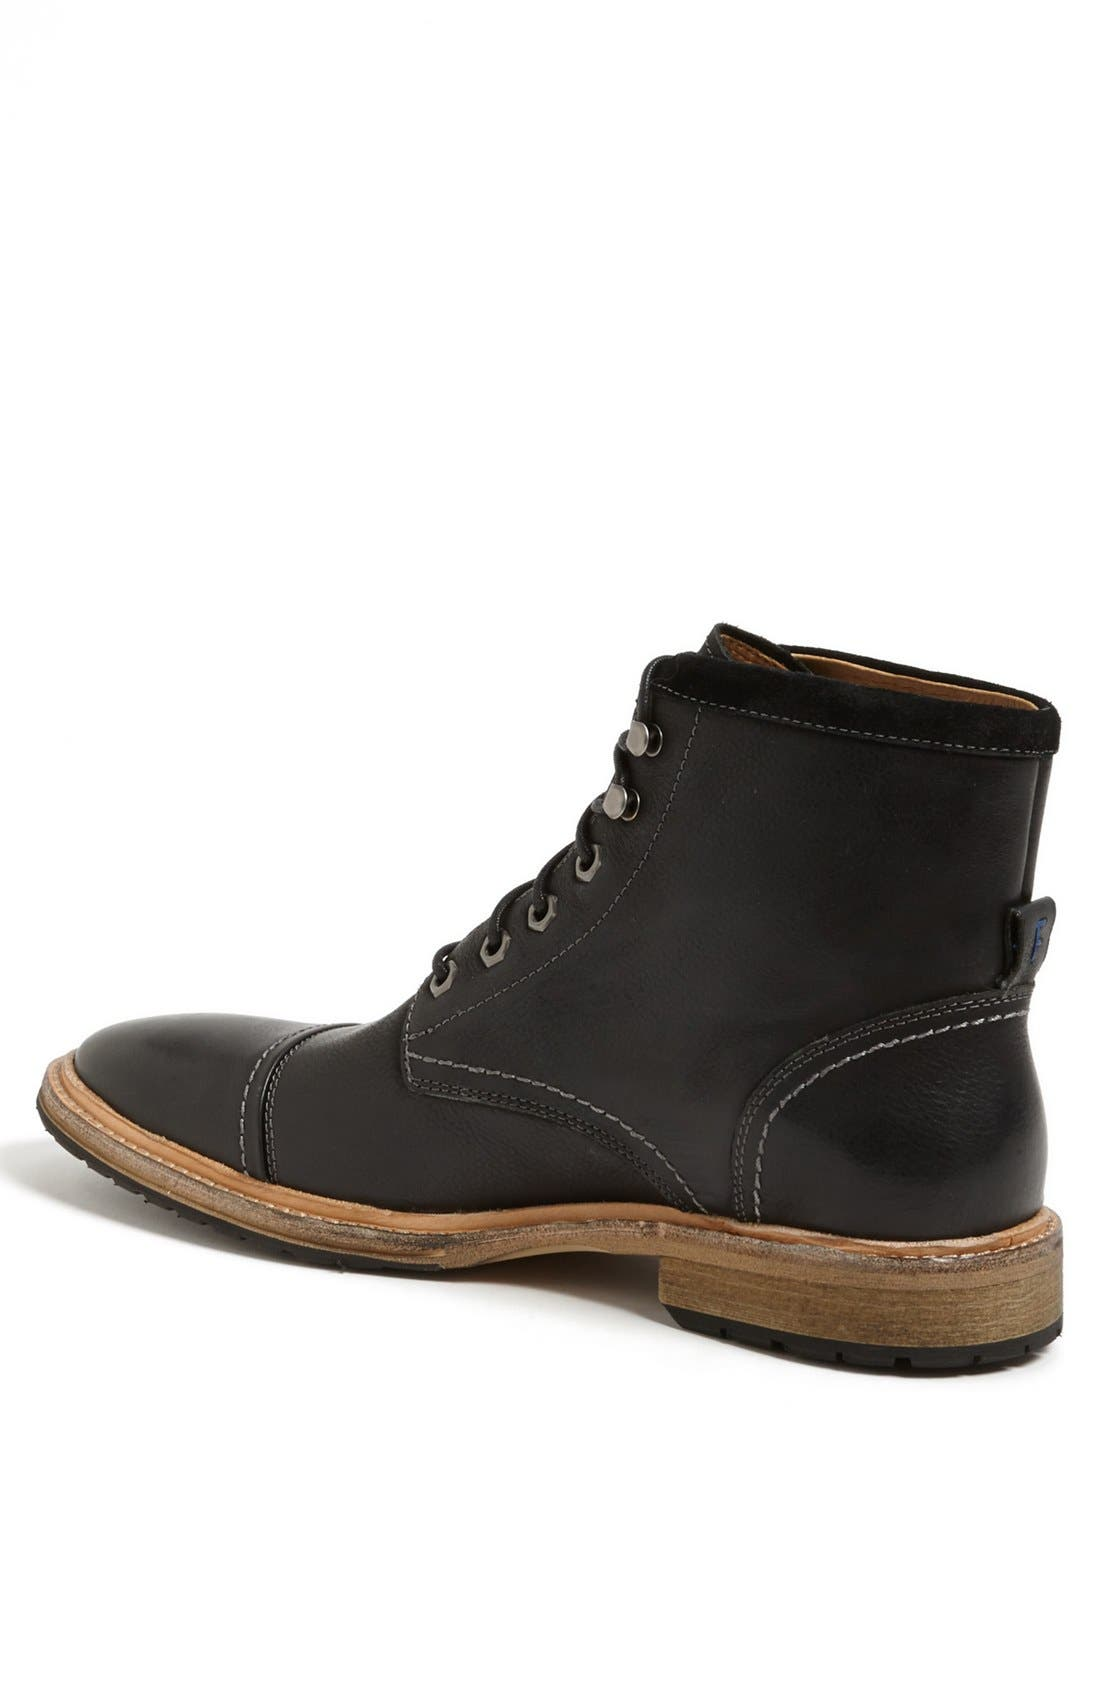 Alternate Image 2  - Florsheim 'Indie' Cap Toe Boot